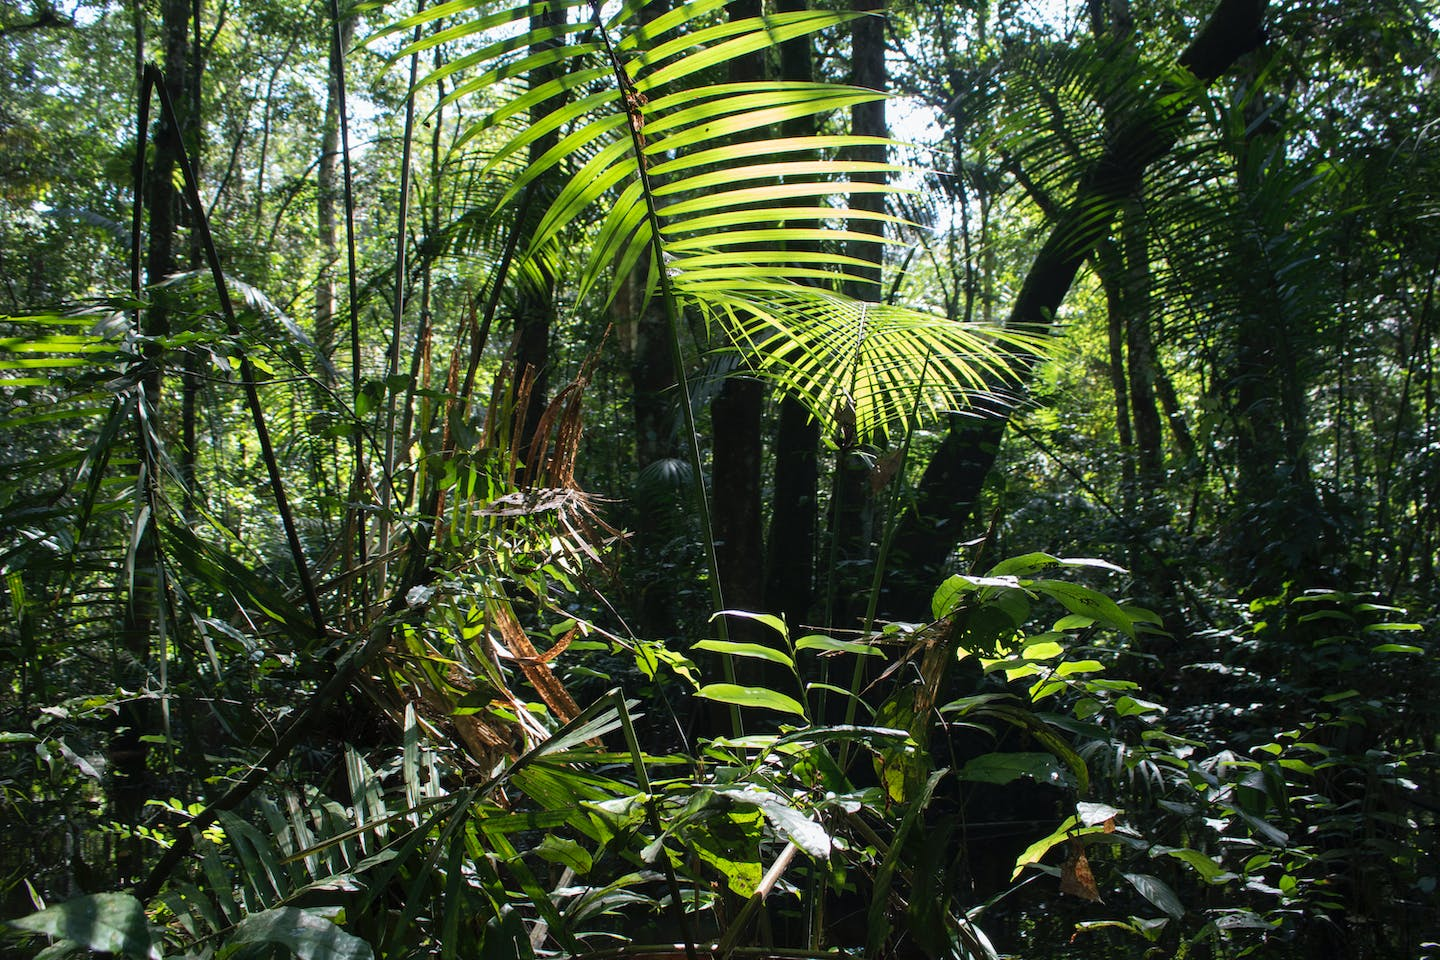 The Emerging Threat of Extractives Sector to Intact Forest Landscapes